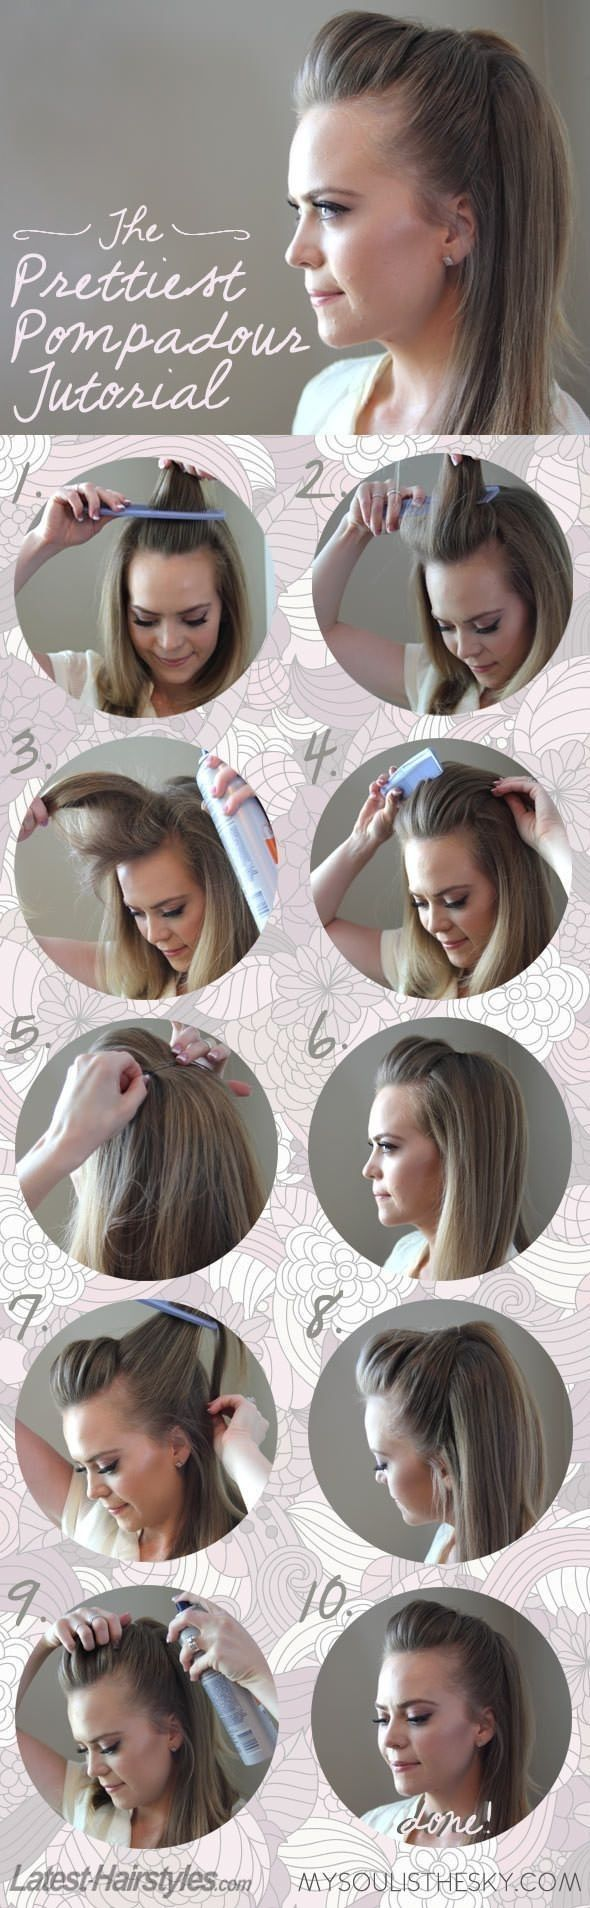 A few 5-minutes hairstyles. - Imgur